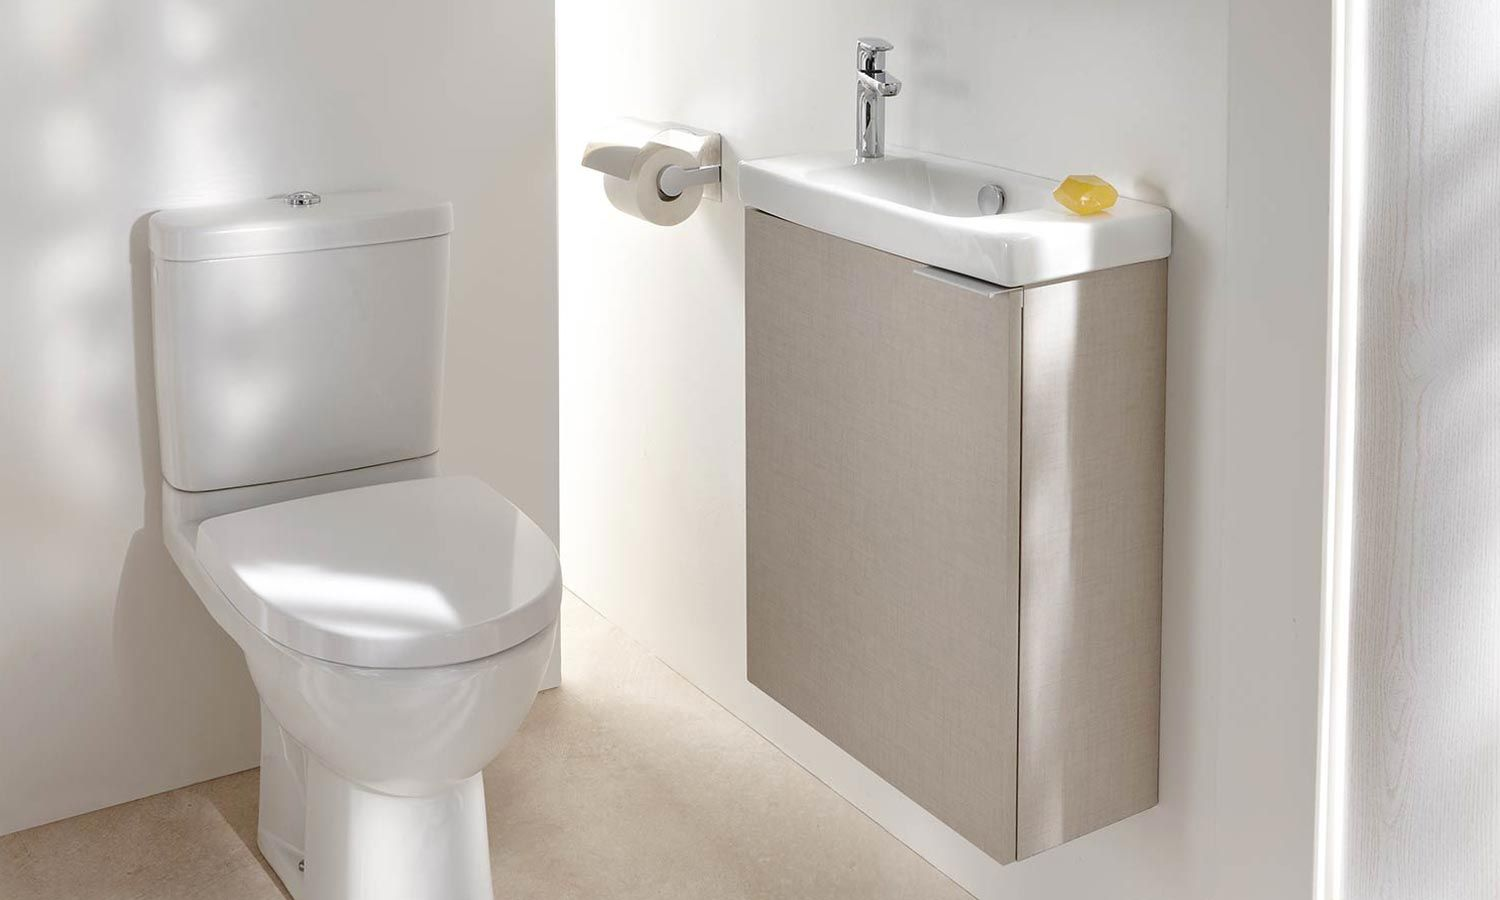 Lave mains sur meuble od on up de jacob delafon toilettes meuble lave main wc lave main et for Wc petit espace renove